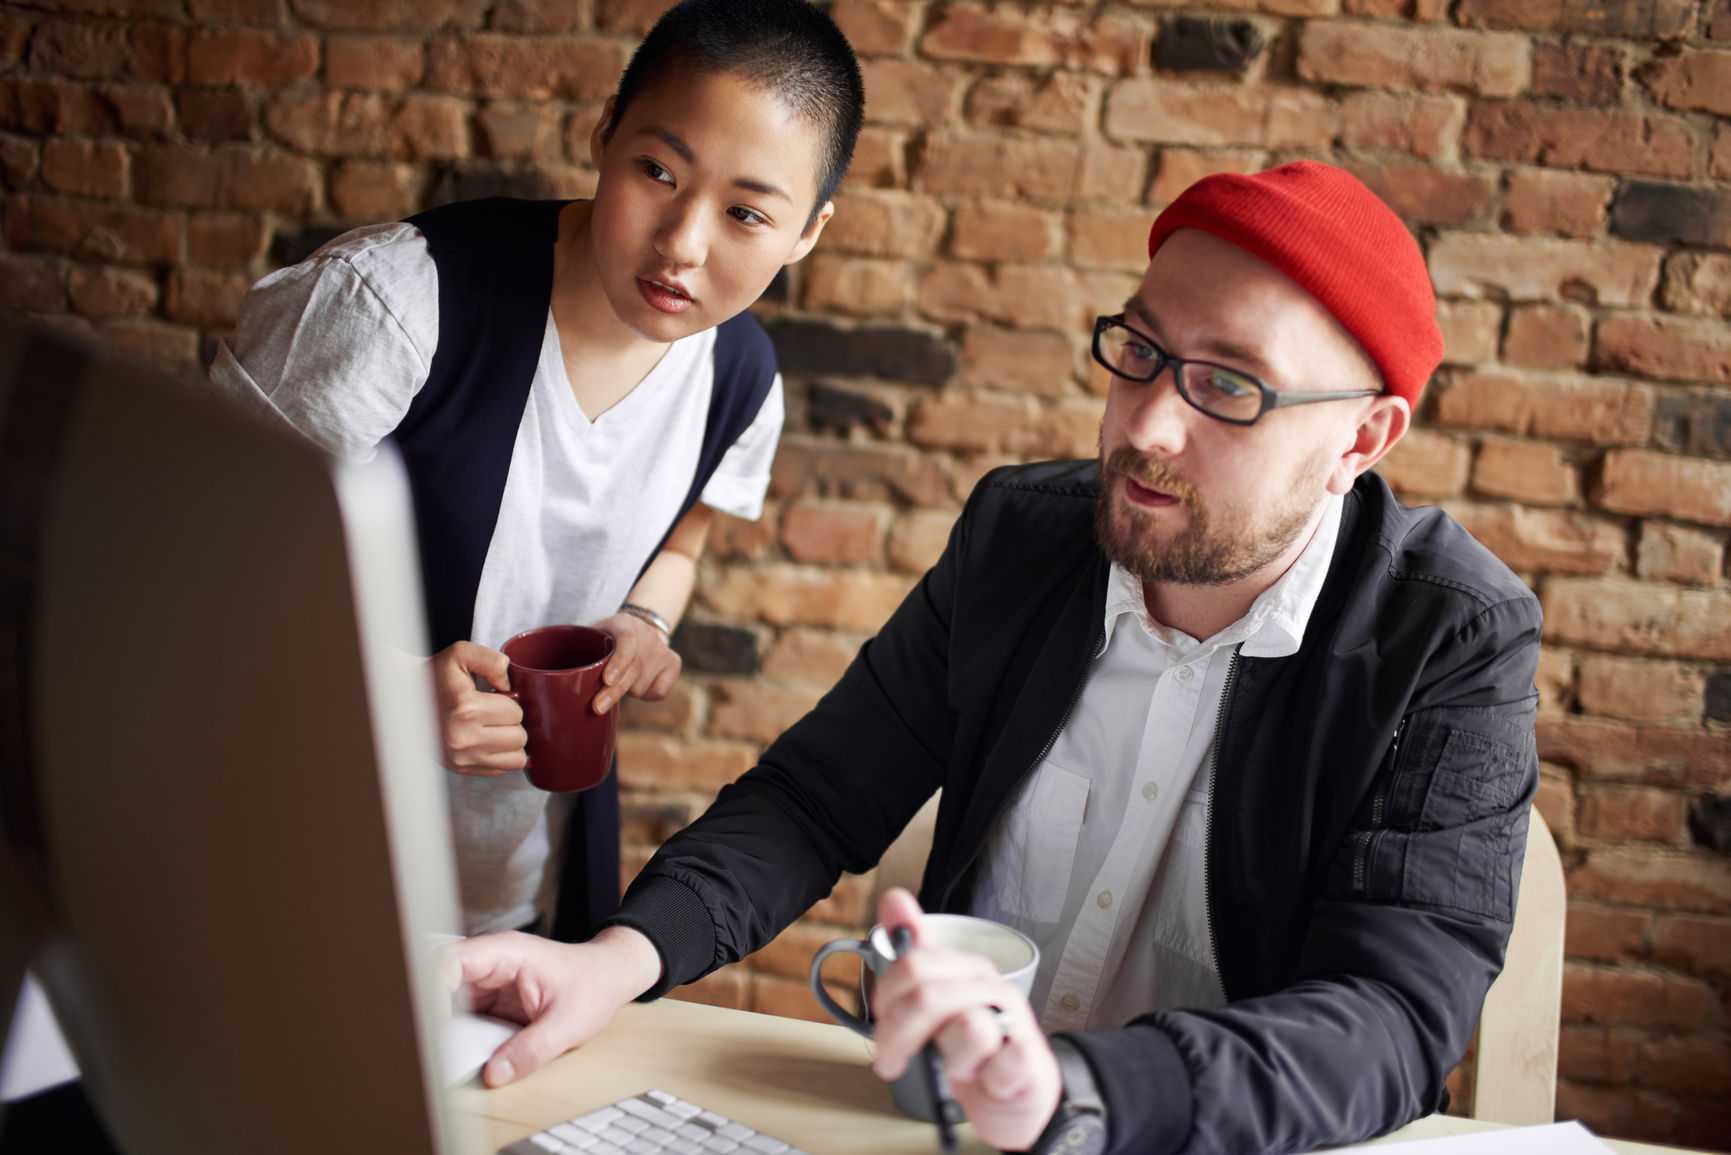 Male art director and his enthusiastic female coworker looking at computer screen attentively against brick wall background